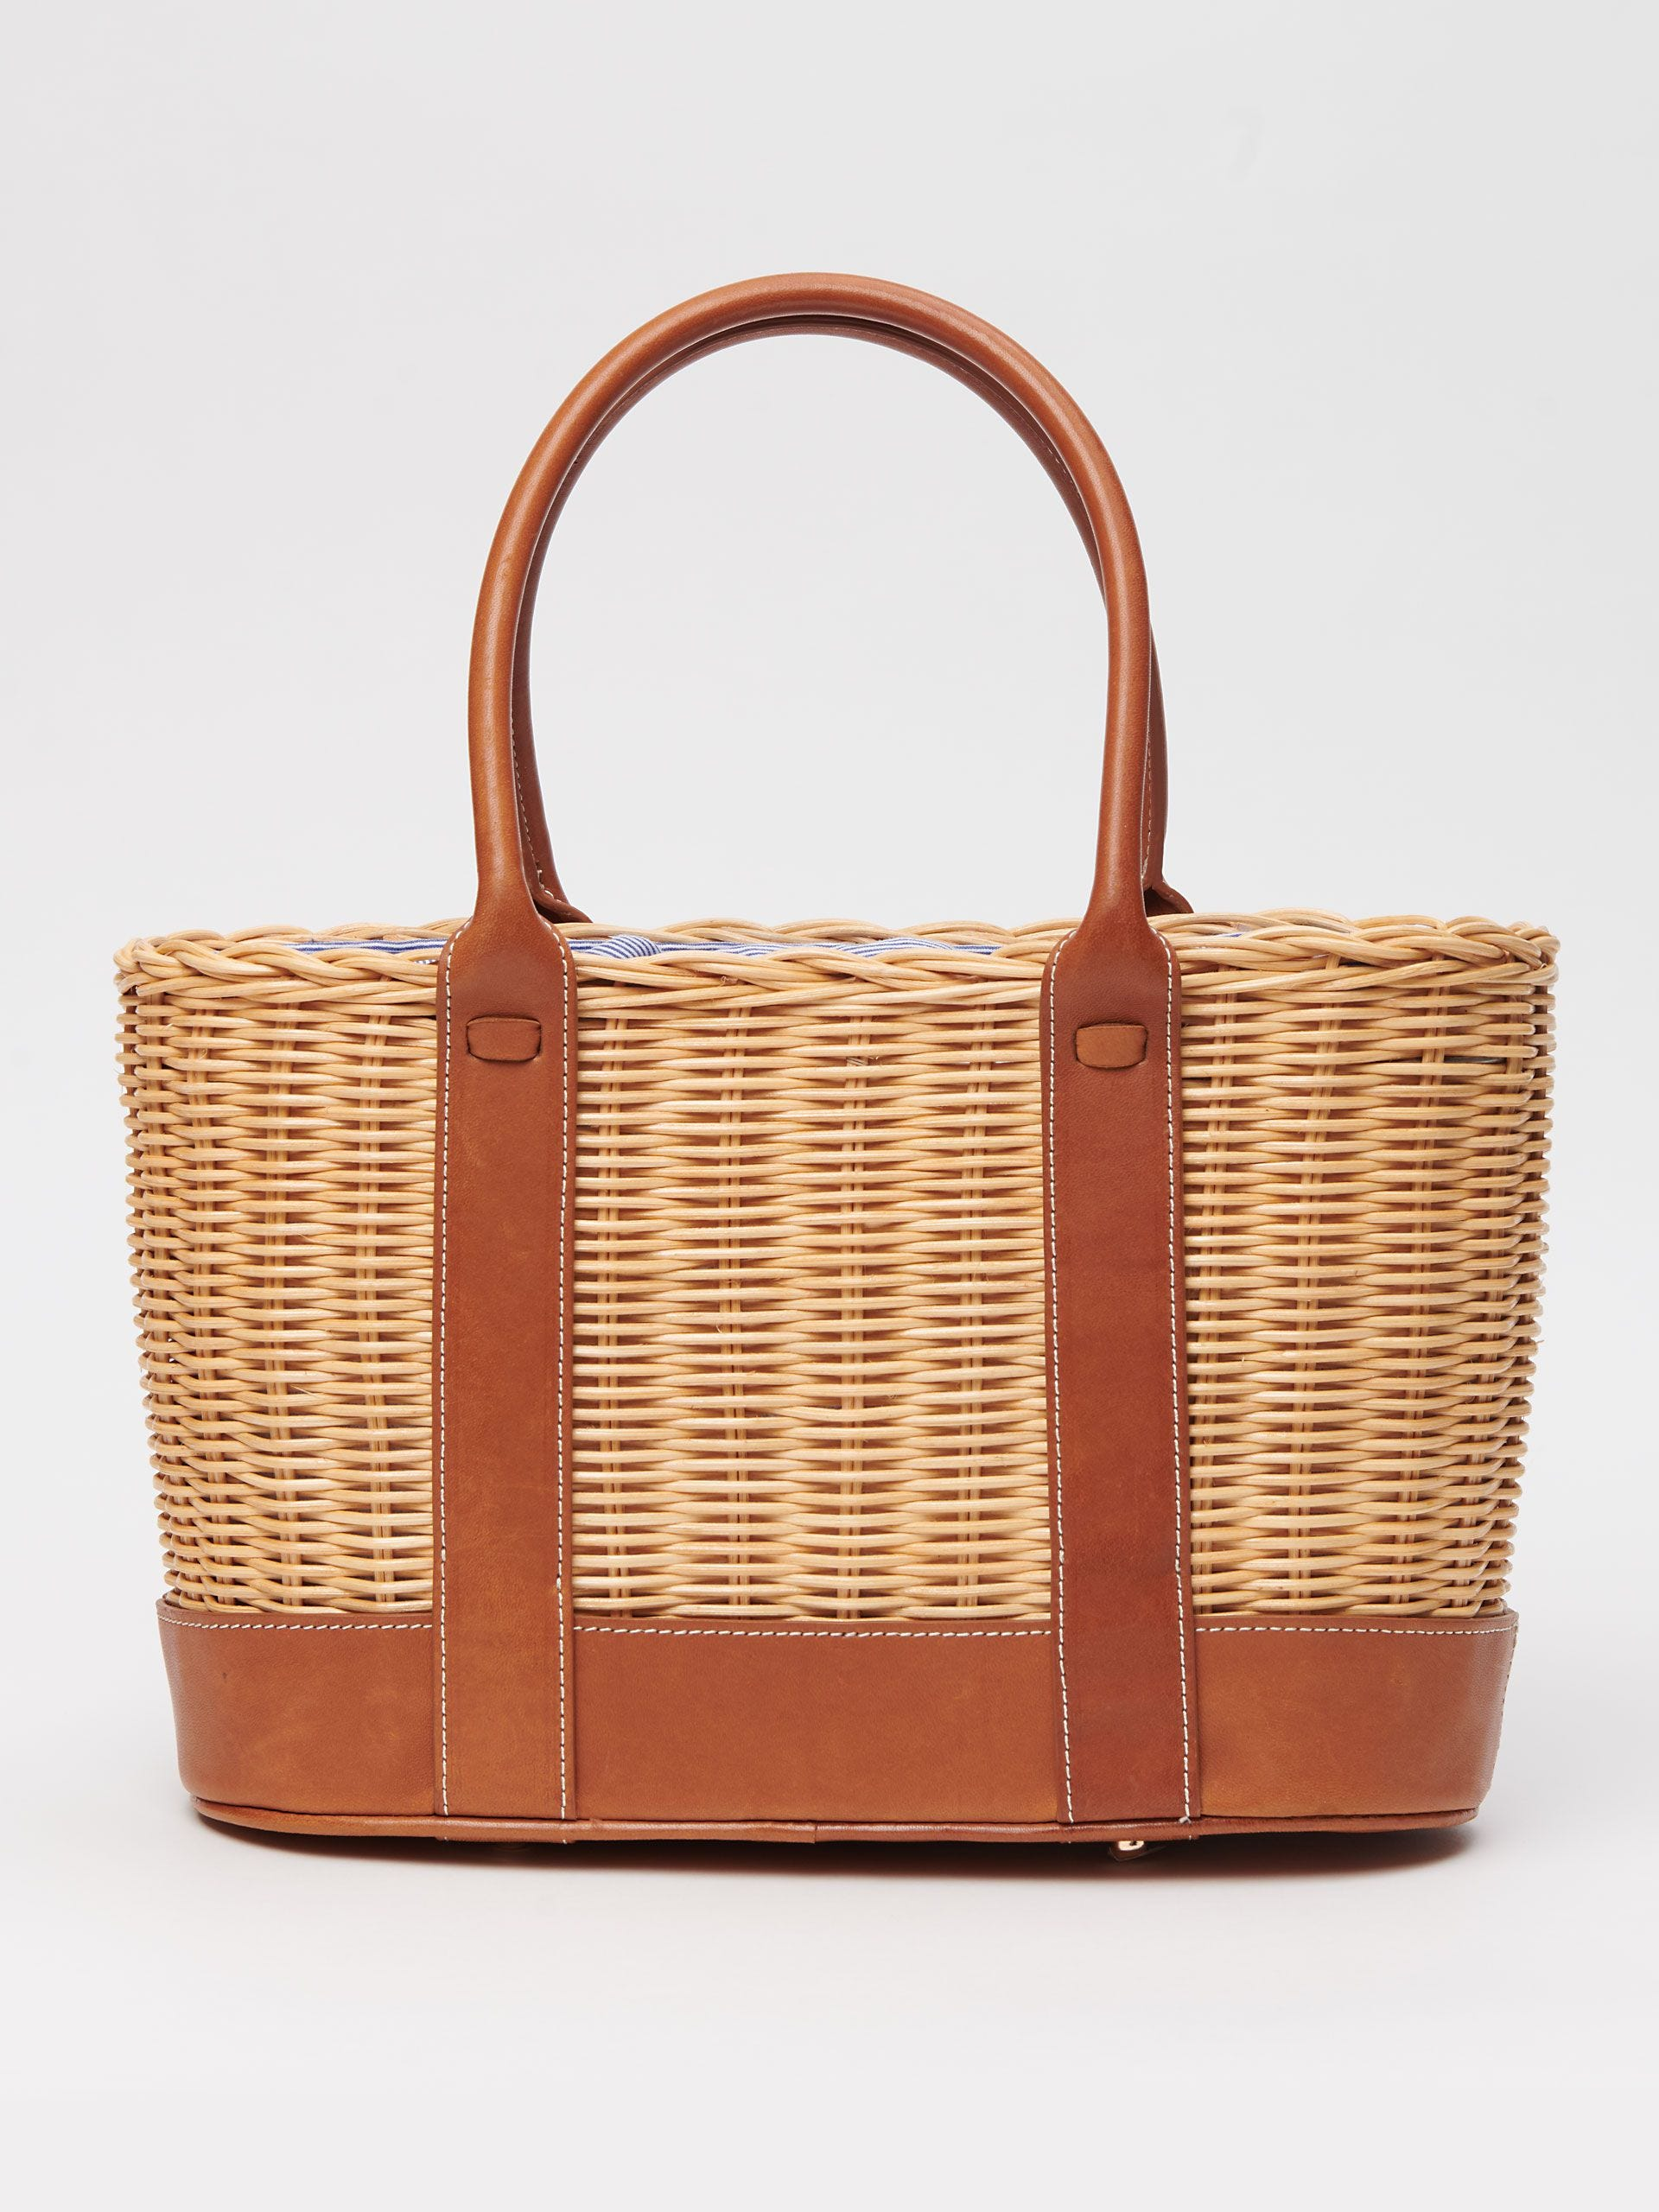 Wicker Bag with Leather Trim